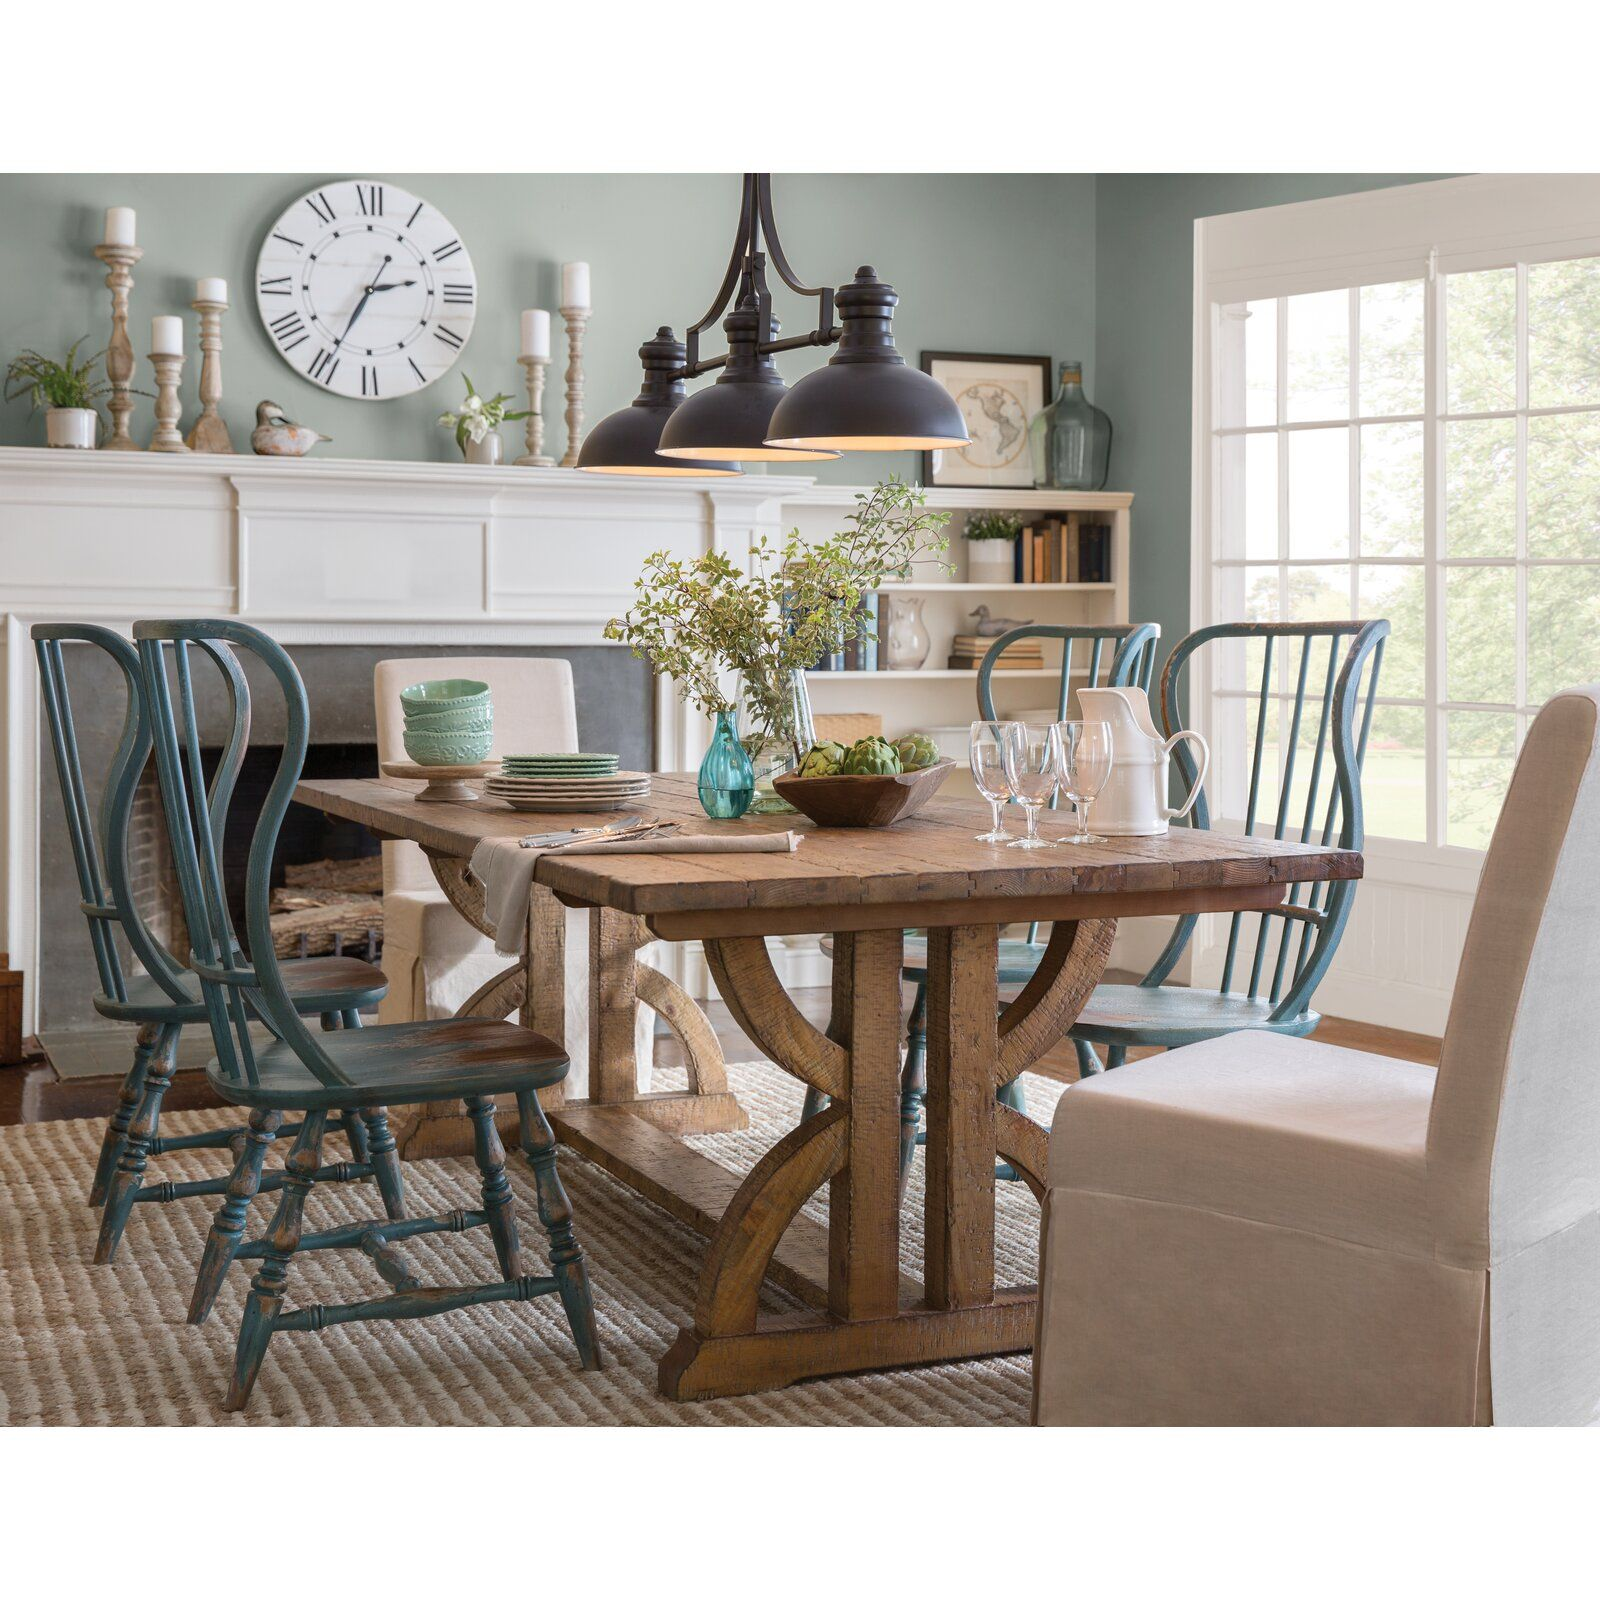 Greyleigh Alpena Dining Table In 2020 Dining Room Table Dining Room Design White Dining Room Furniture